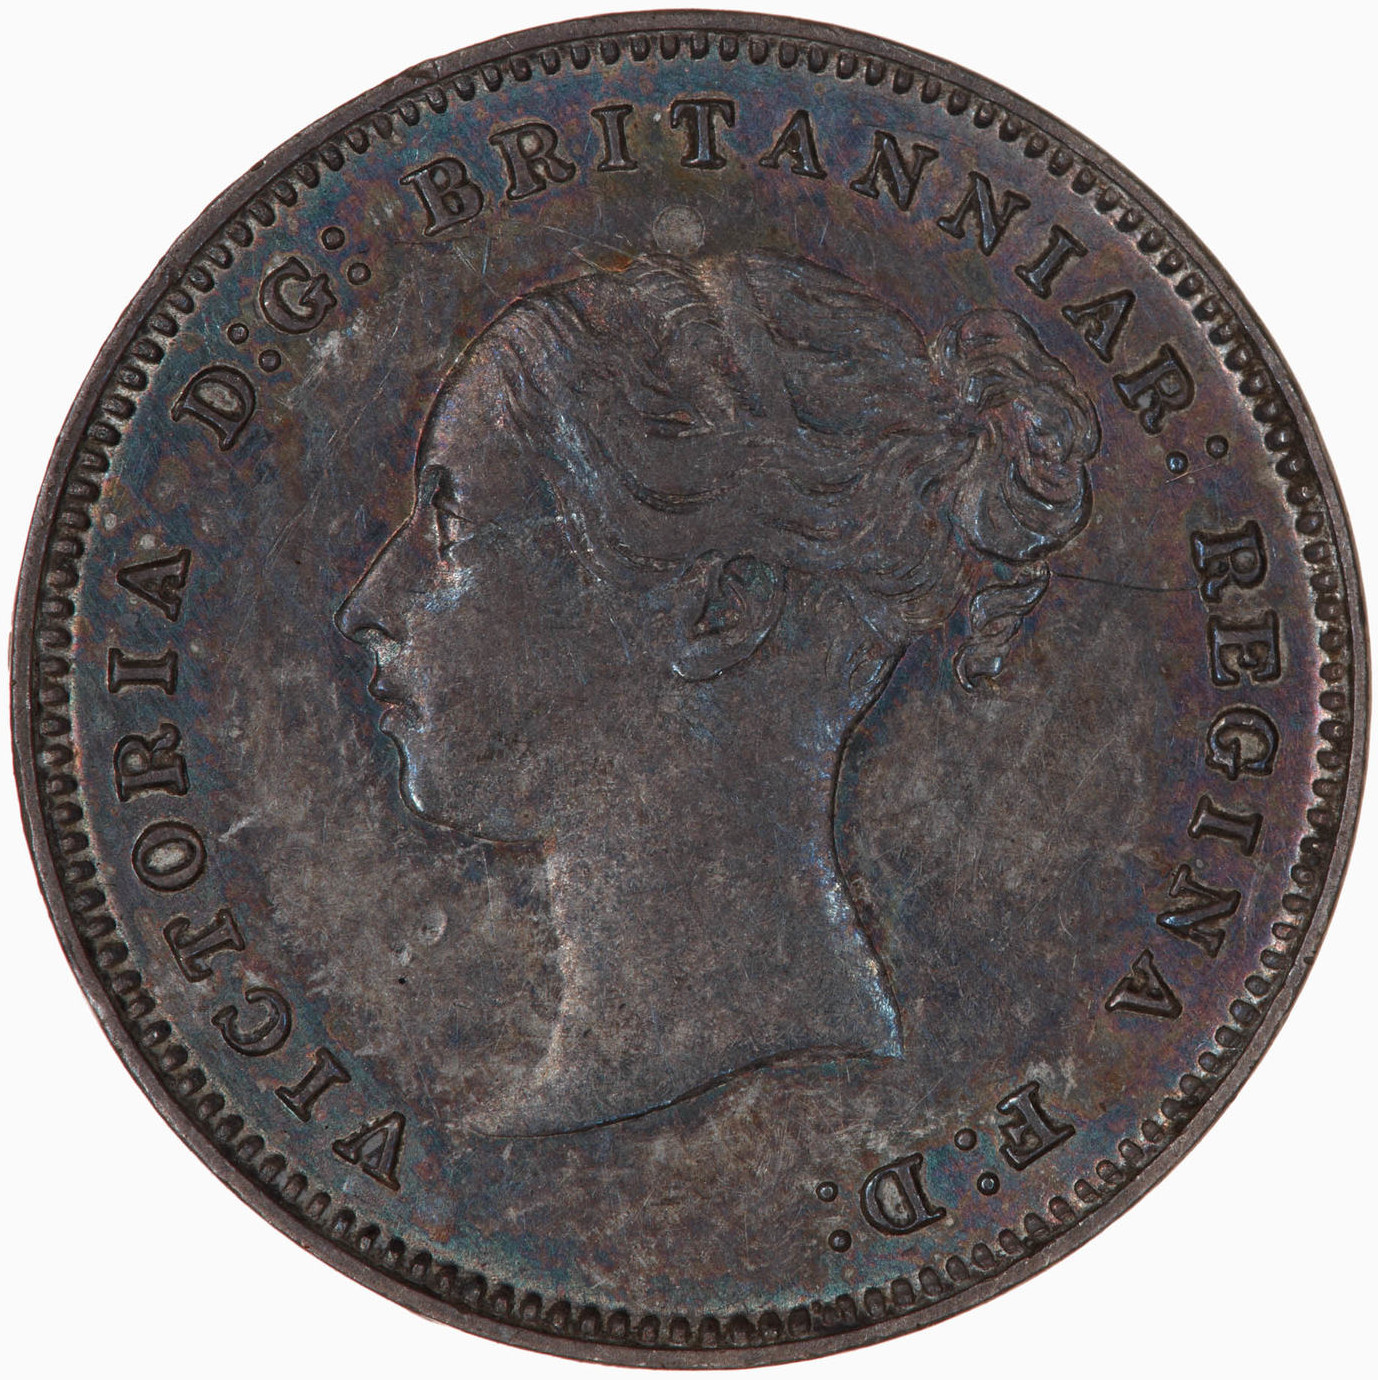 Fourpence 1882 (Maundy): Photo Coin - Groat (Maundy), Queen Victoria, Great Britain, 1882